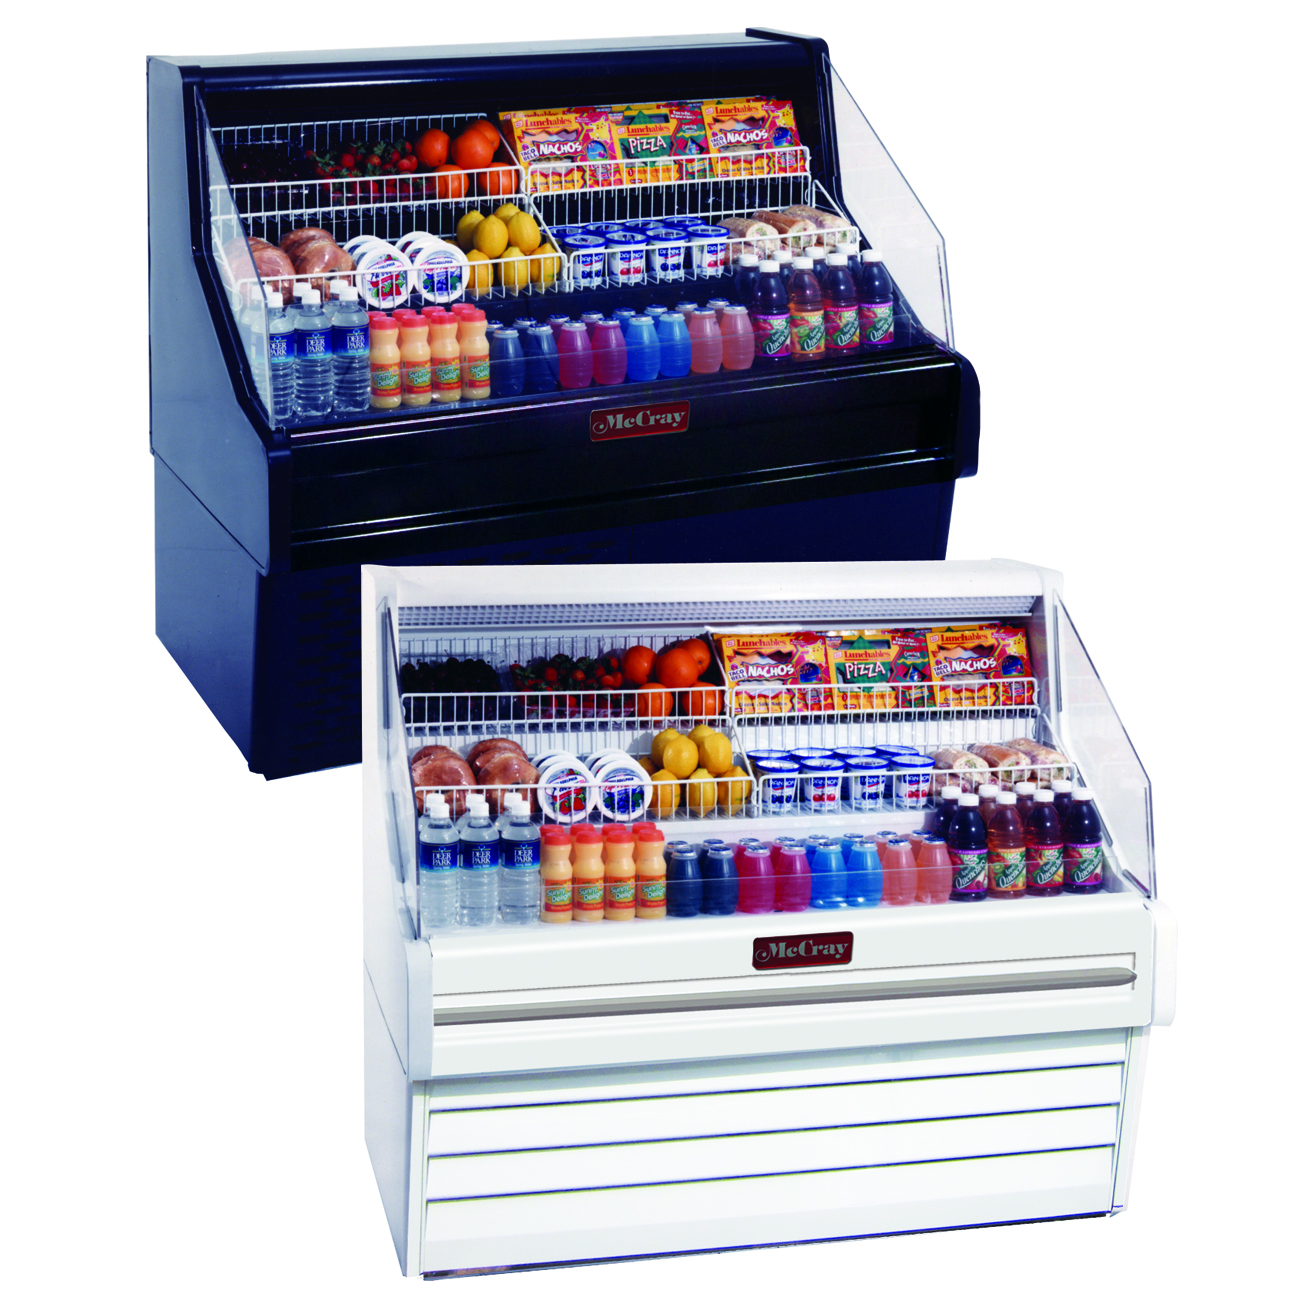 Howard-McCray R-OS30E-3-B-LED merchandiser, open refrigerated display